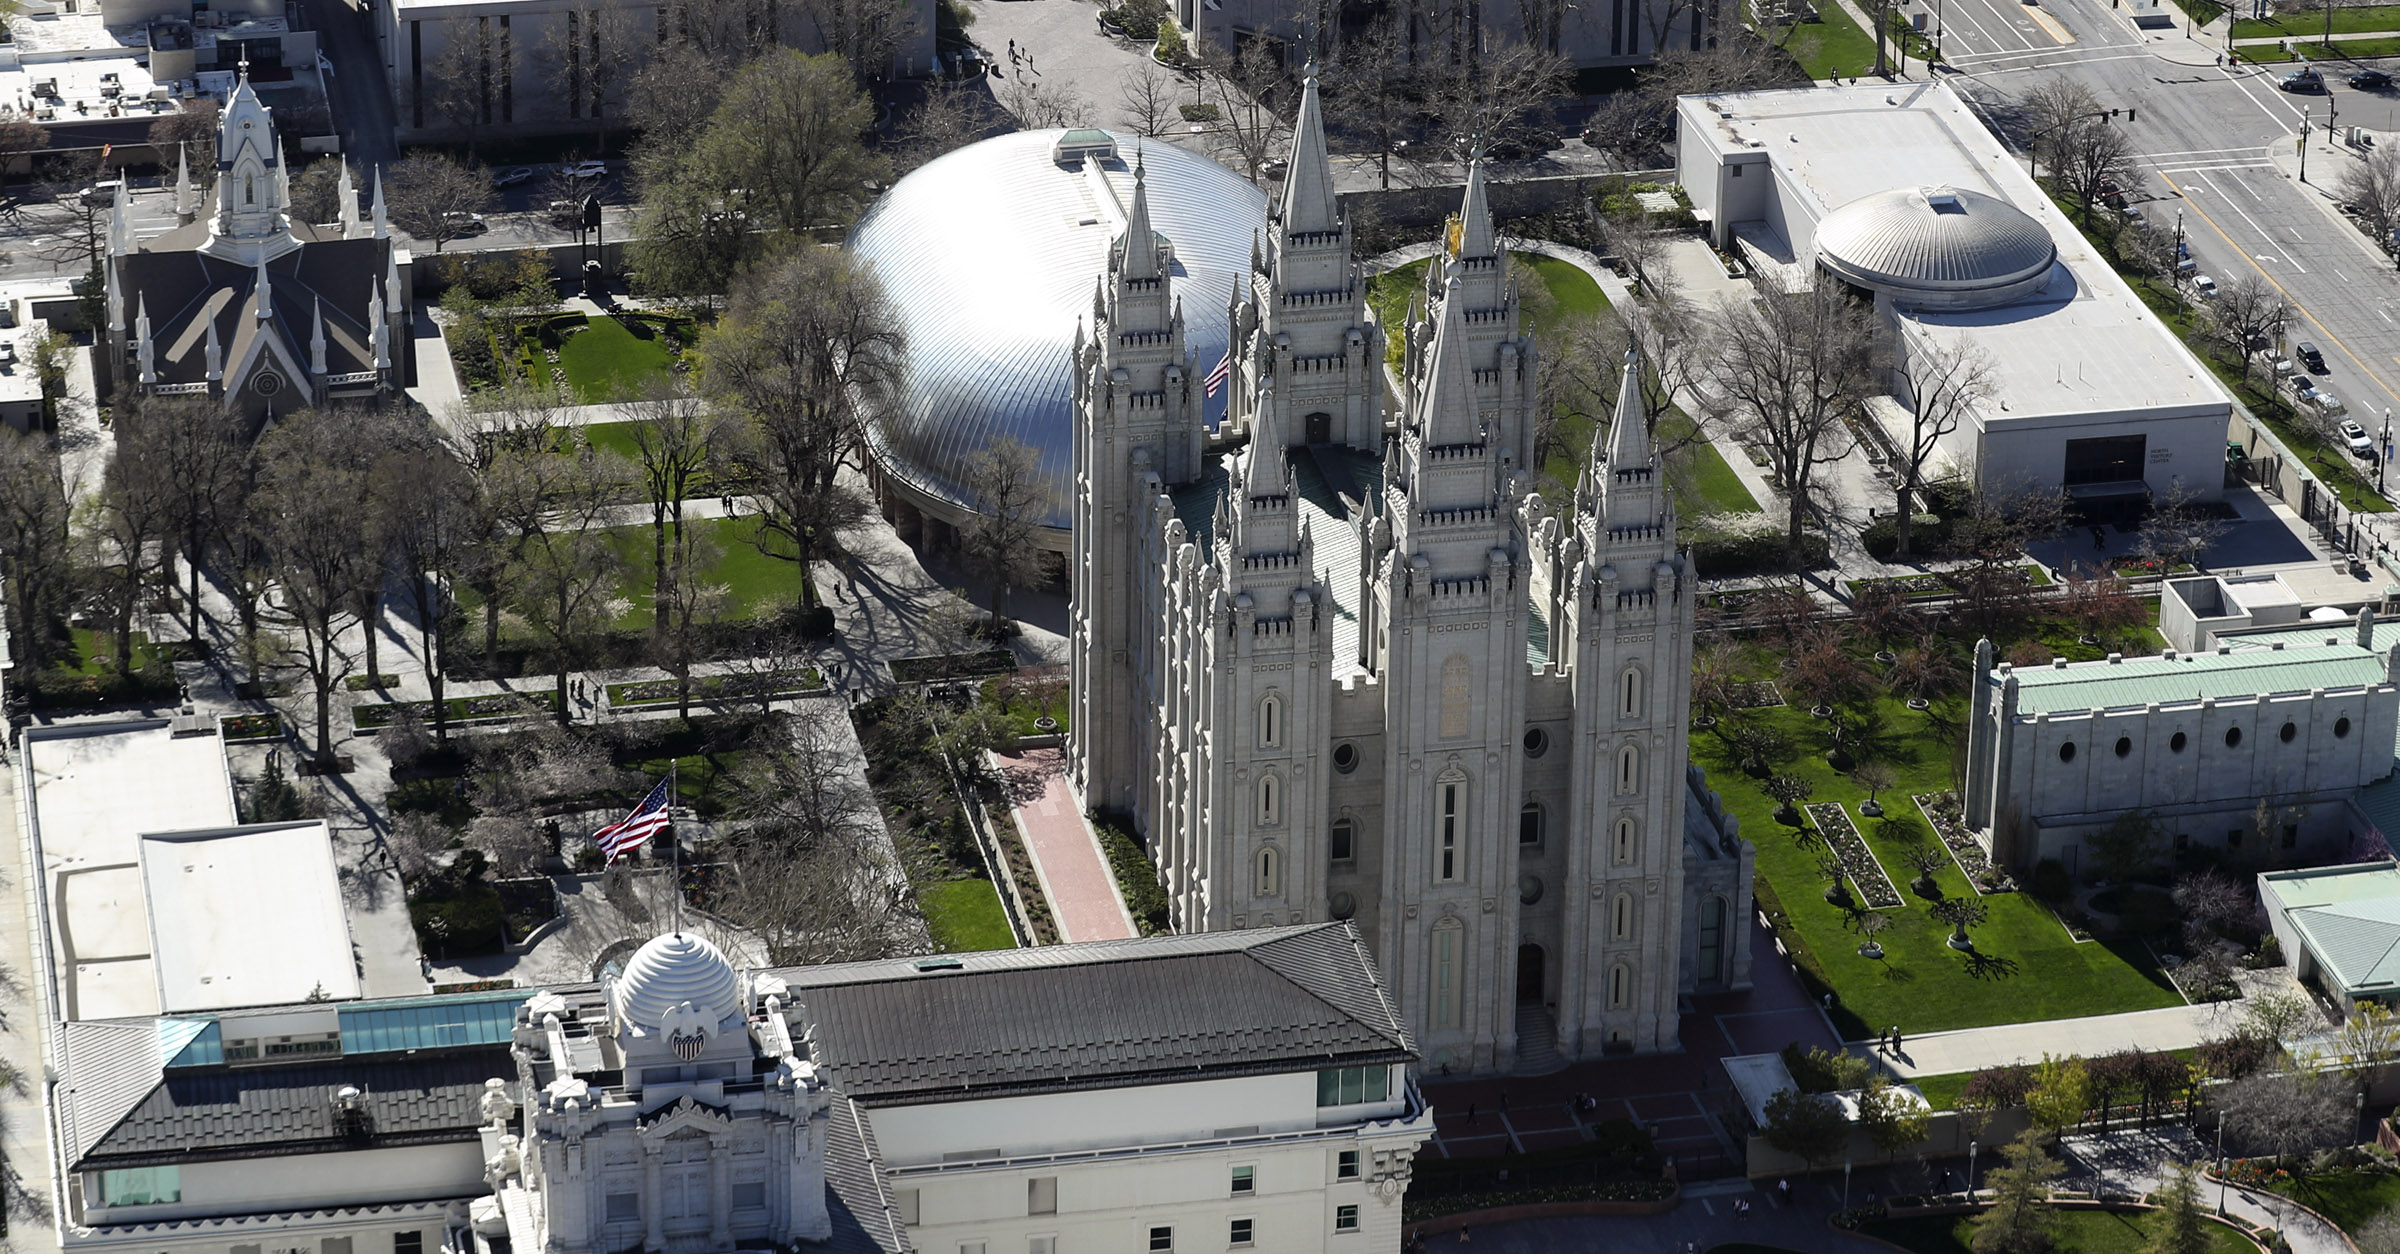 Temple Square y el centro de Salt Lake City son fotografiados el jueves 18 de abril de 2019.